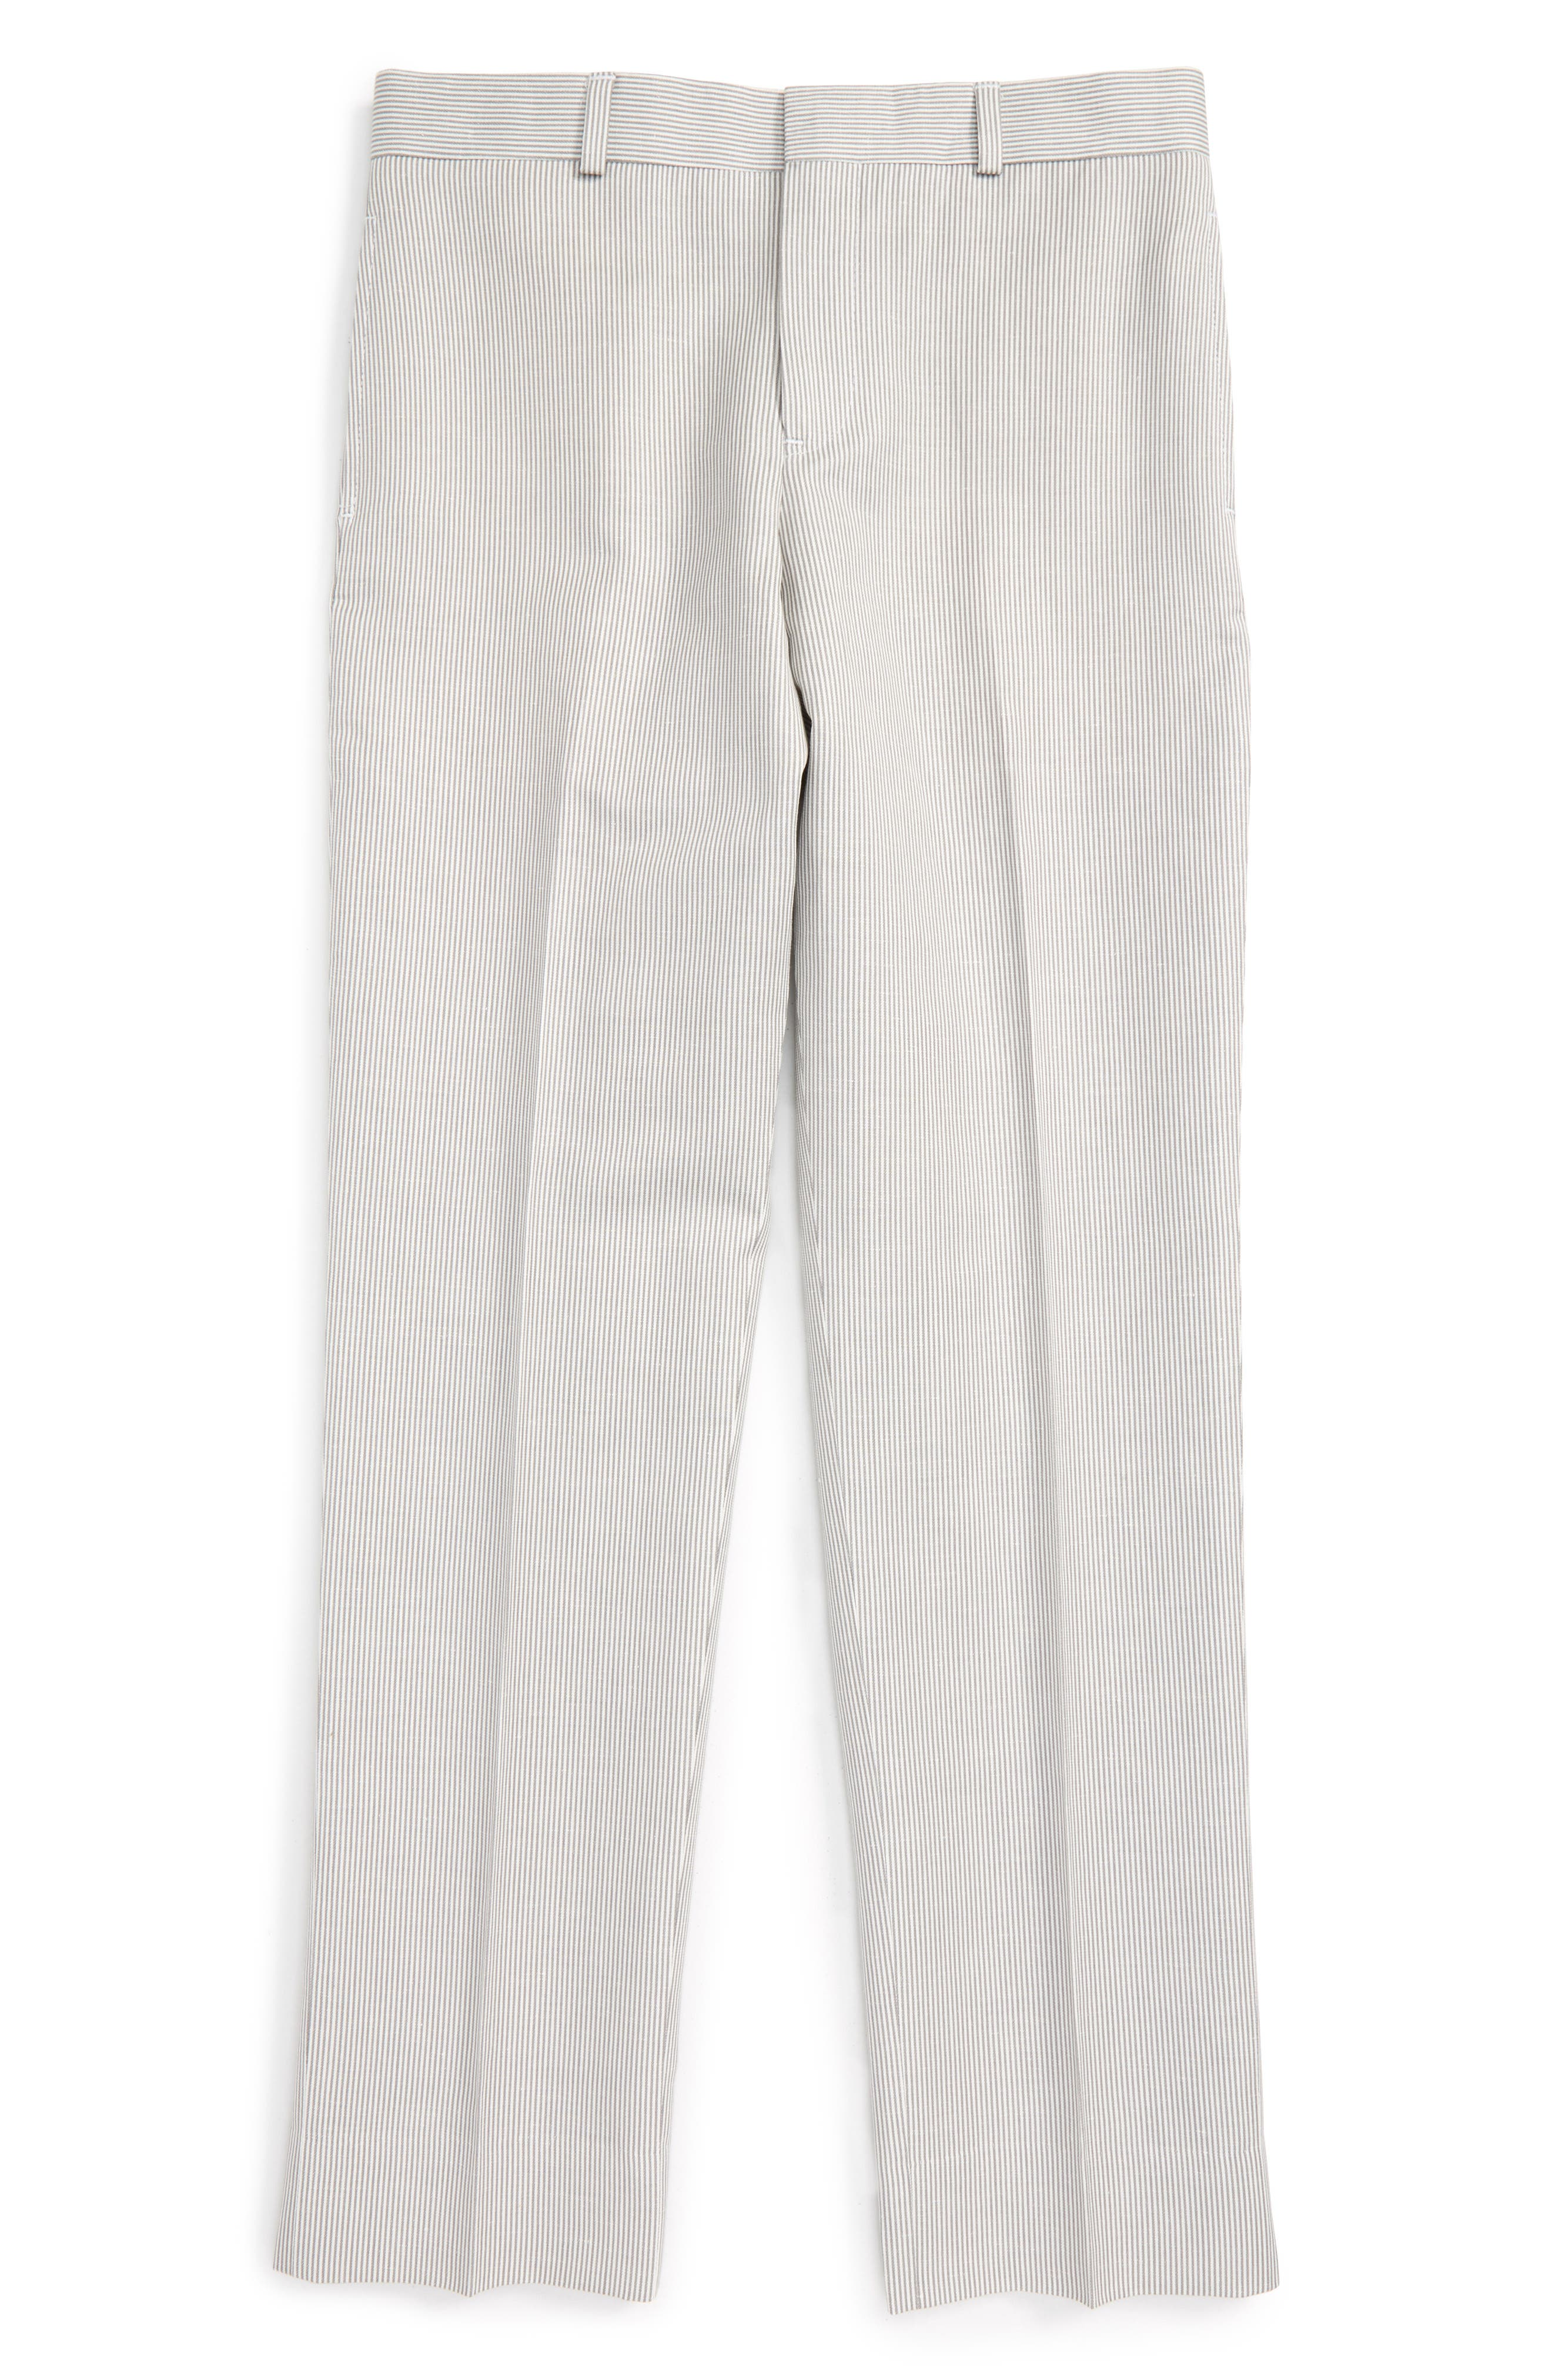 JB JR Stripe Flat Front Cotton and Linen Trousers (Big Boys)